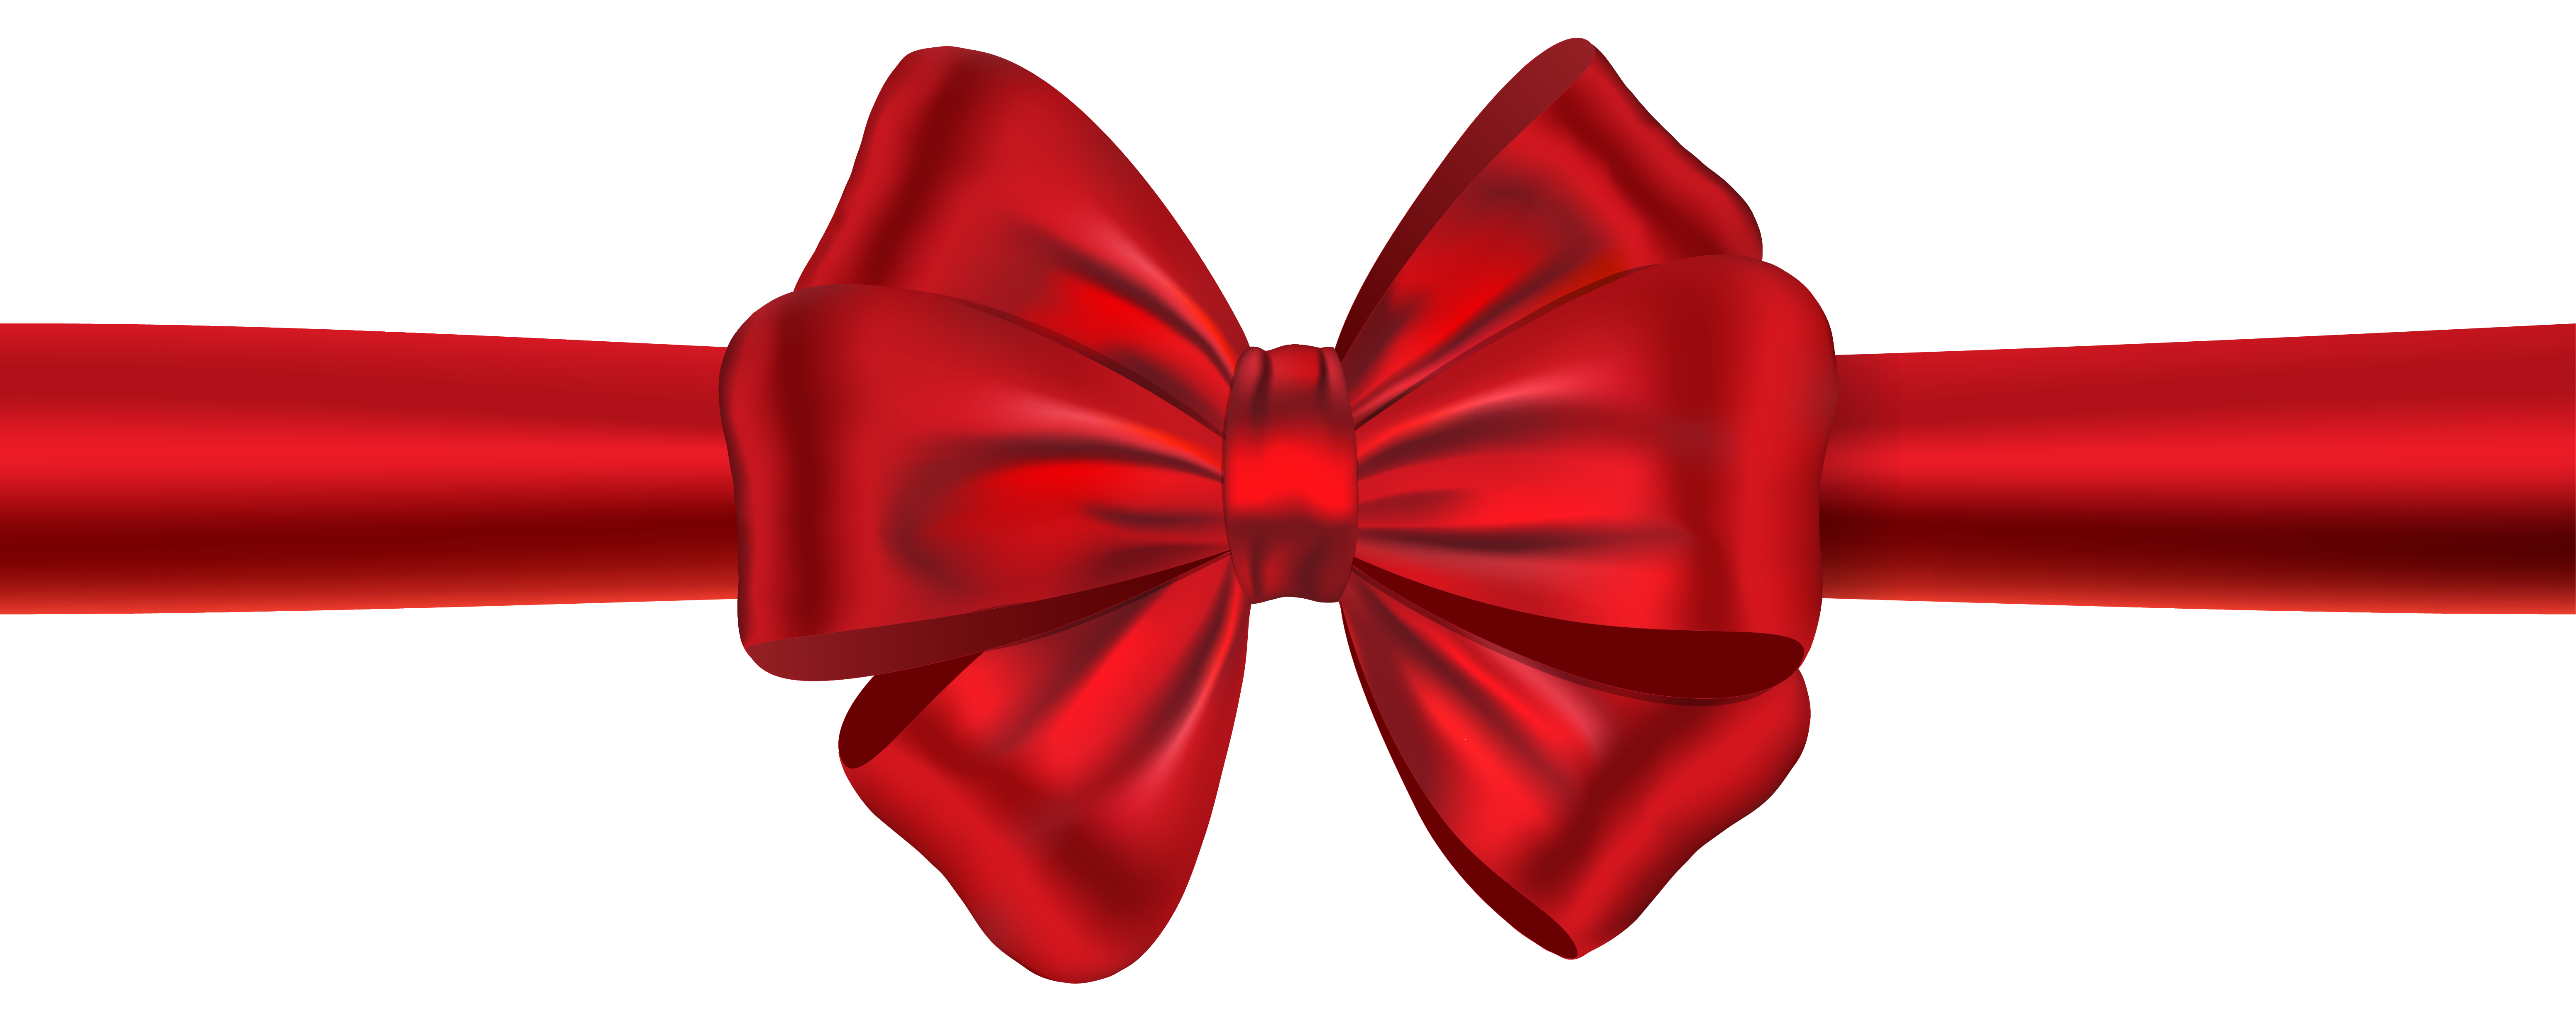 Merry Christmas Ribbon Clipart.Christmas Clipart Ribbon Free Download Best Christmas